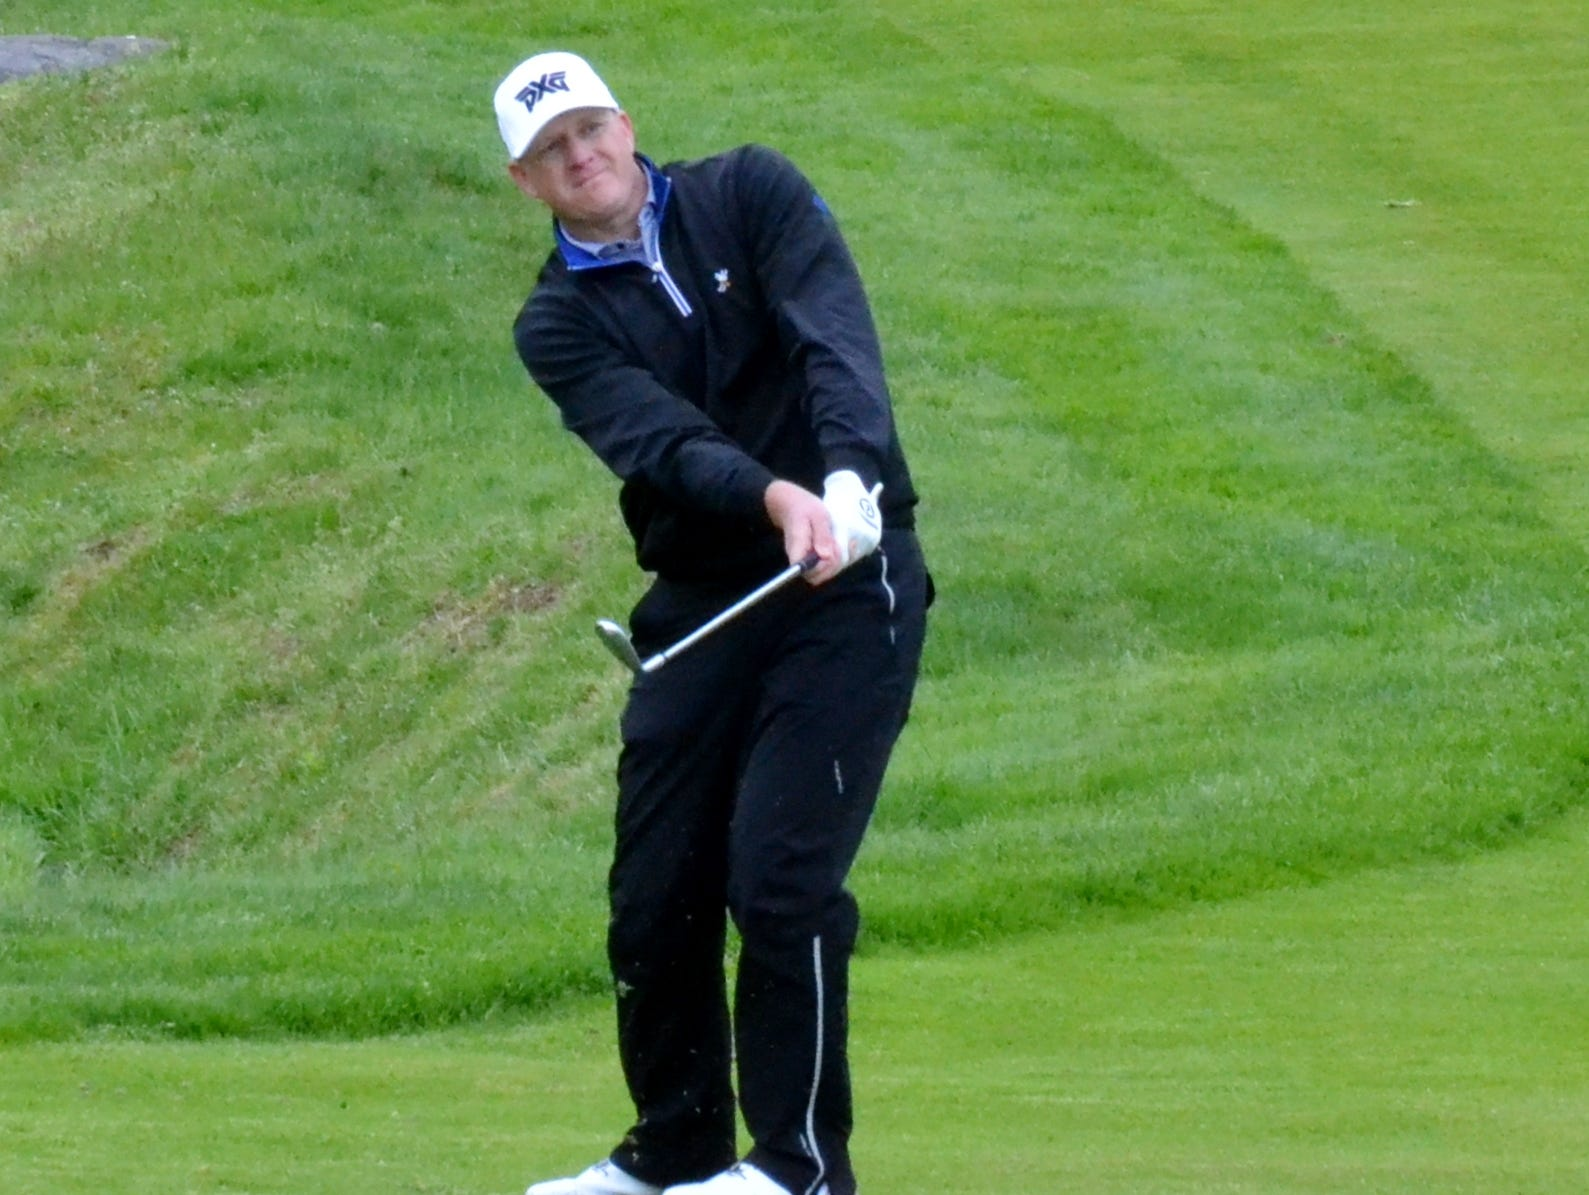 Grant Sturgeon got through local qualifying for the U.S. Open with an even-par 71 at Willow Ridge on Monday.